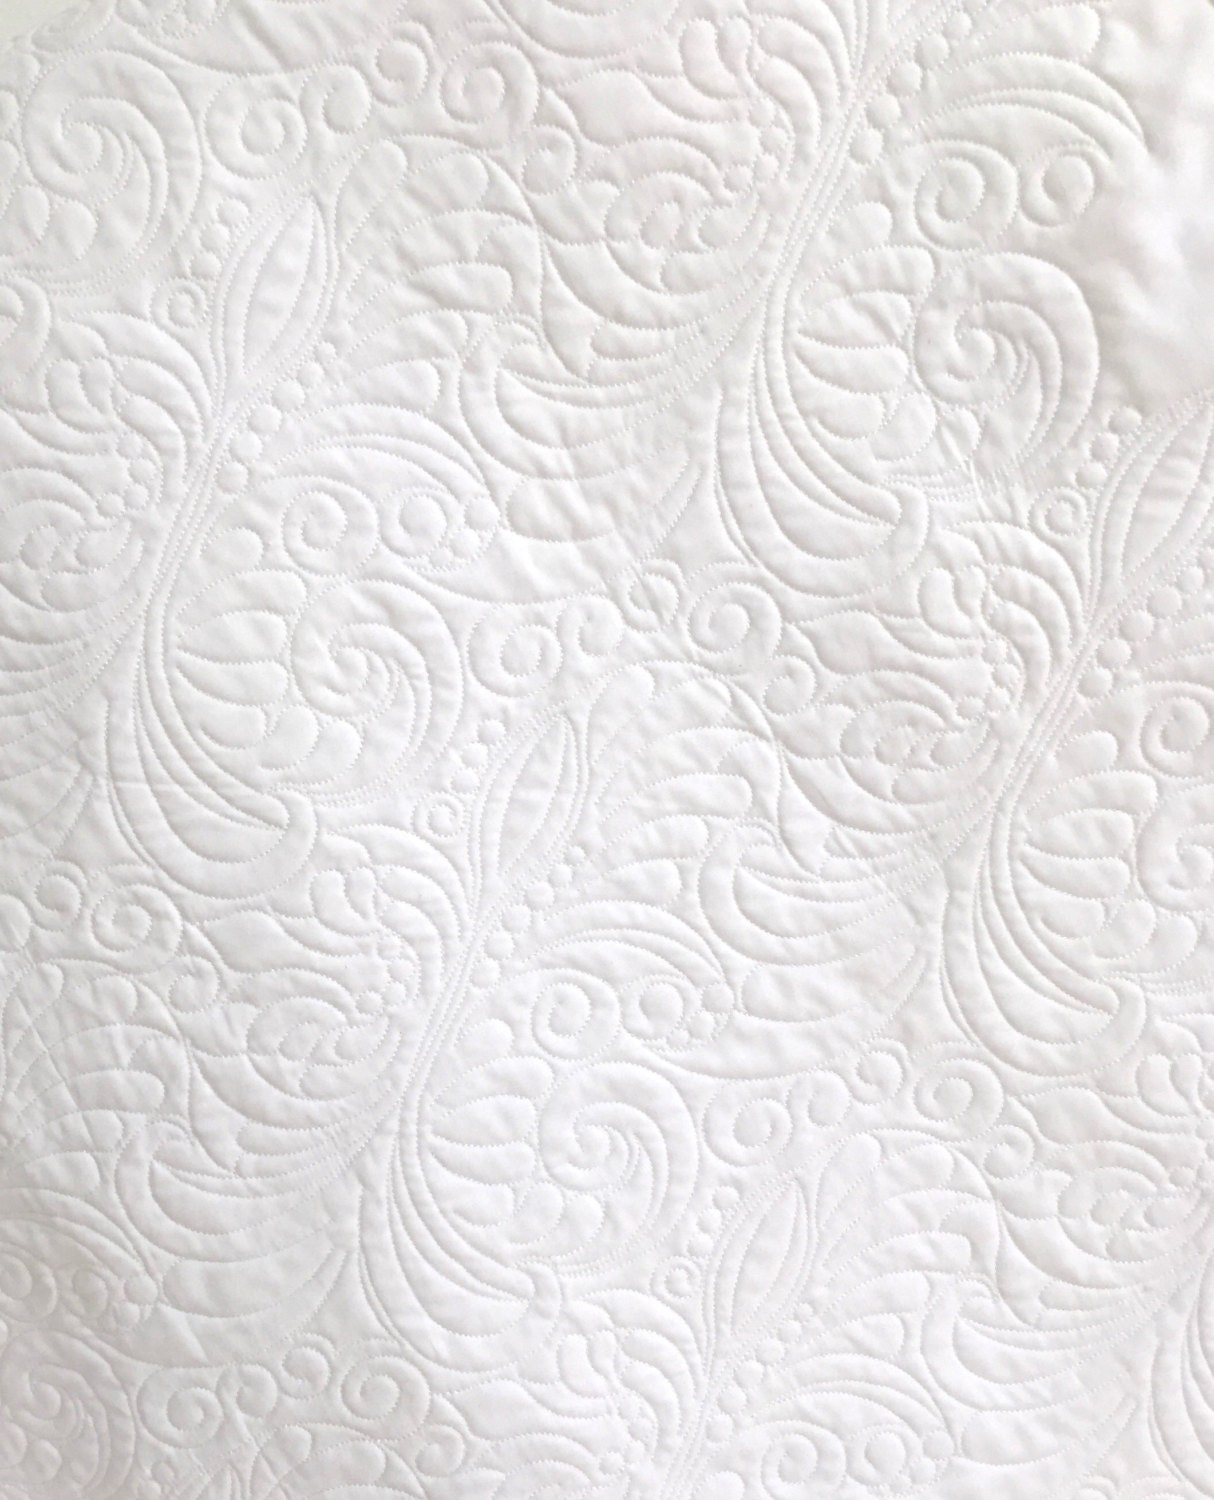 Baby Quilt Whole Cloth with Soft White Cotton Fabric for Soft White Cotton Texture  155sfw